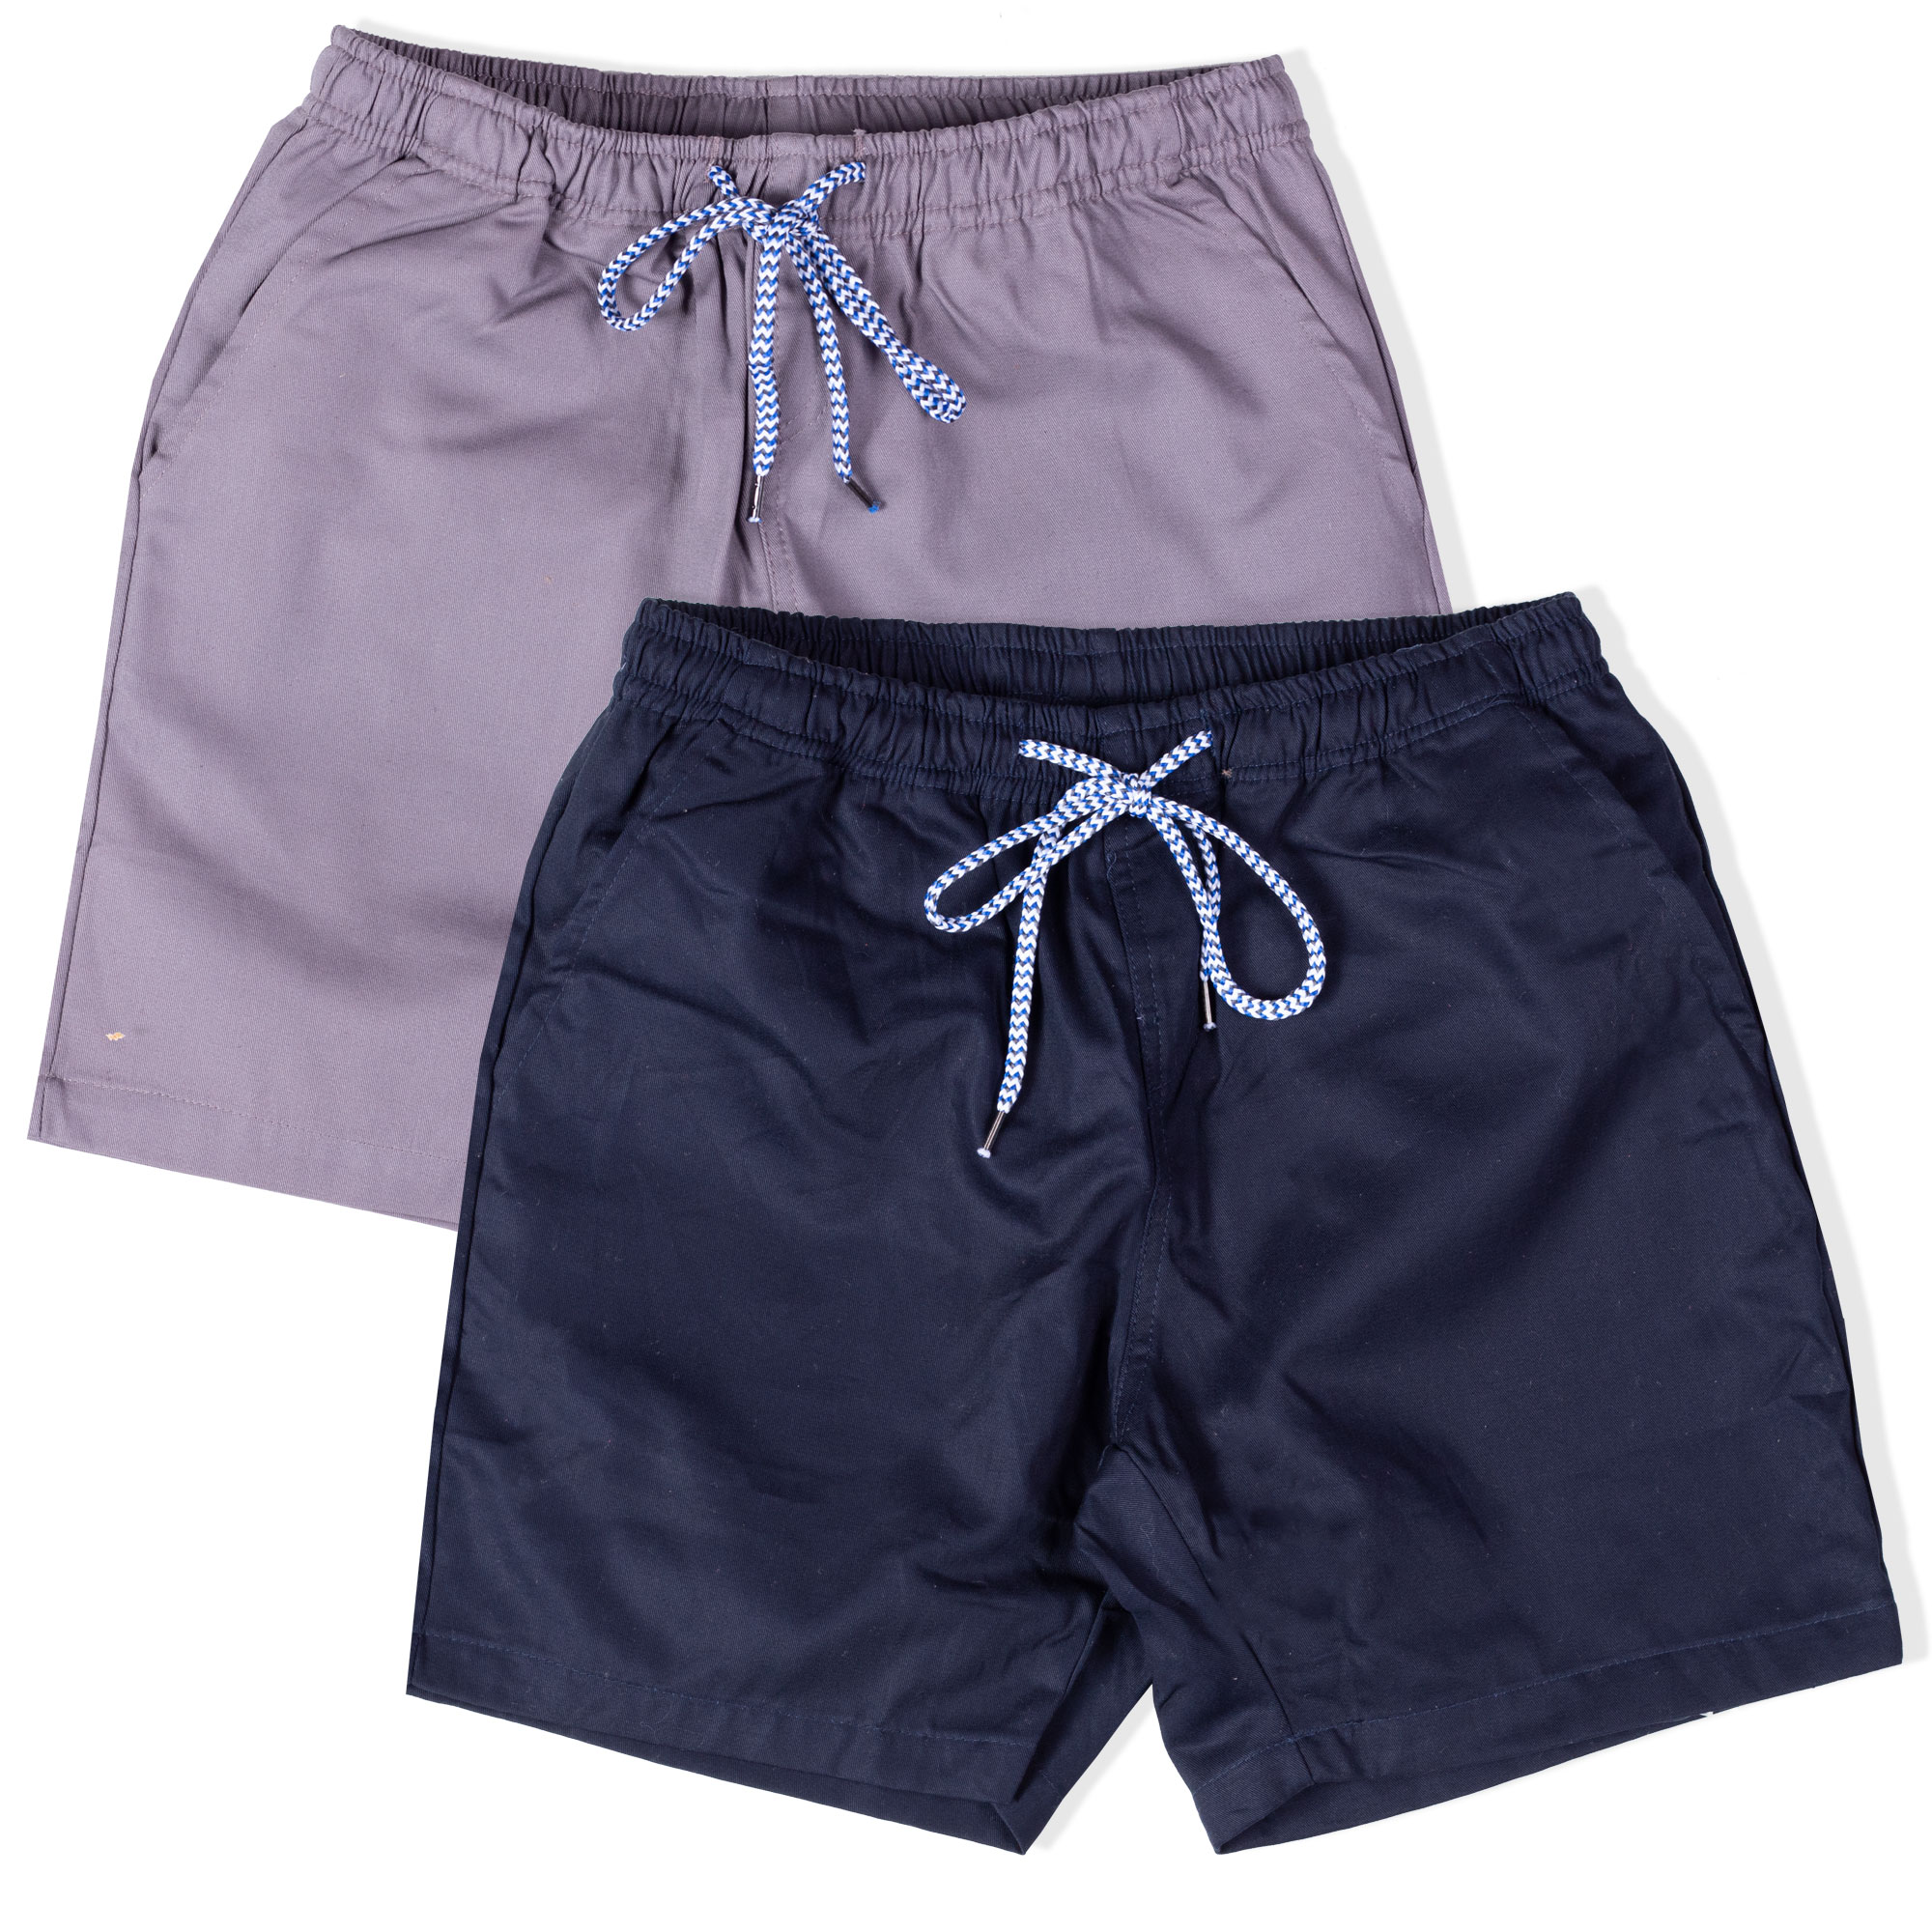 NEW Men/'s UO without walls ripstop blue shorts Size XL X-Large drawstring